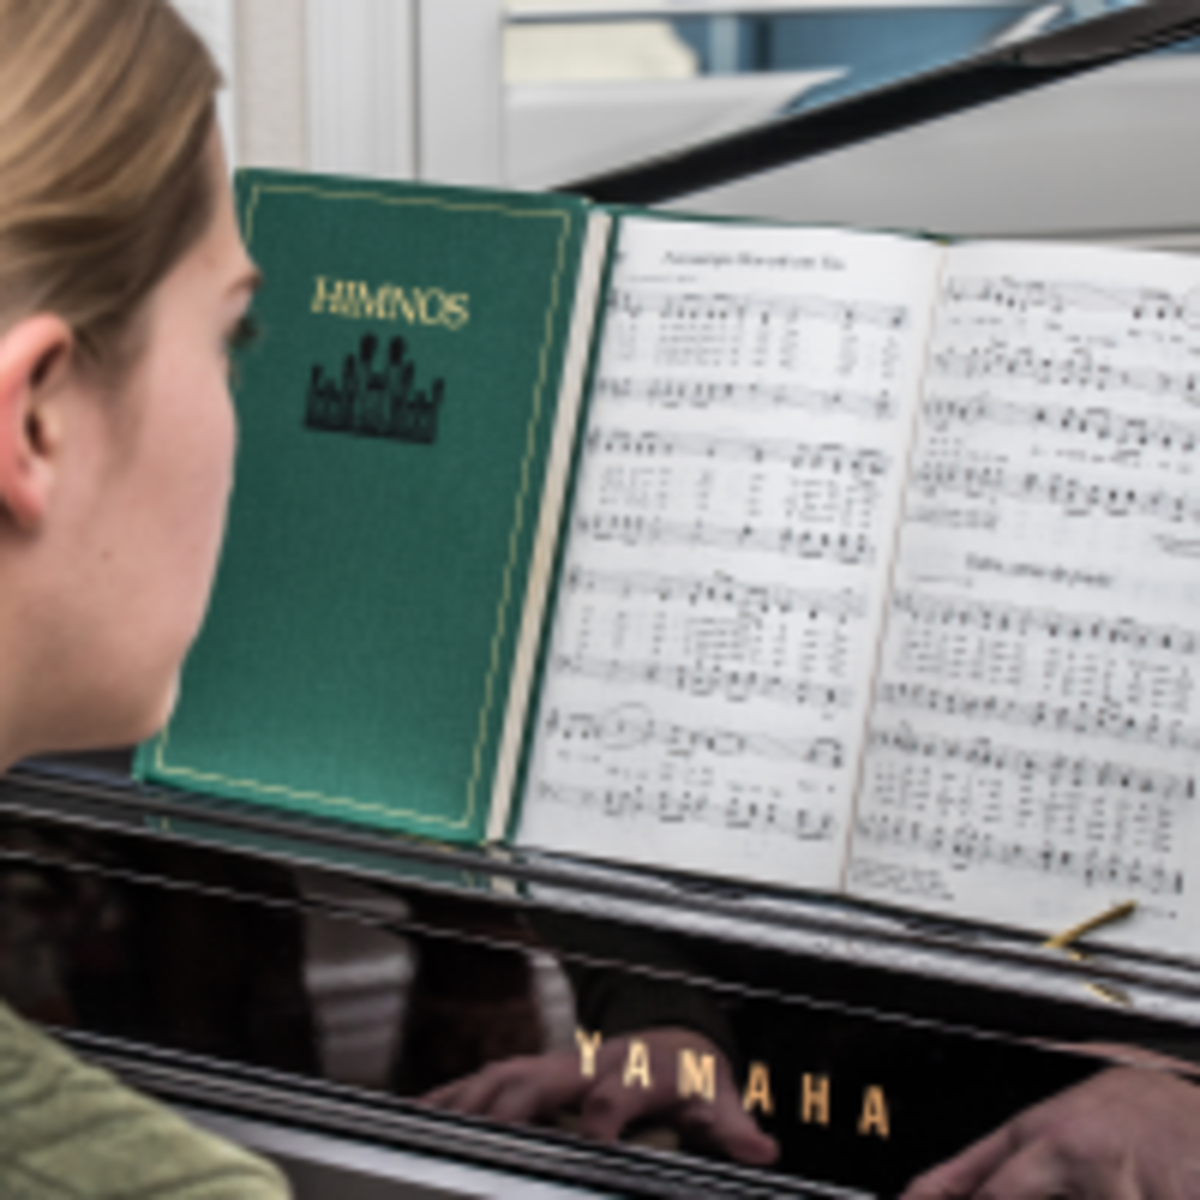 girl playing piano from hymnbook